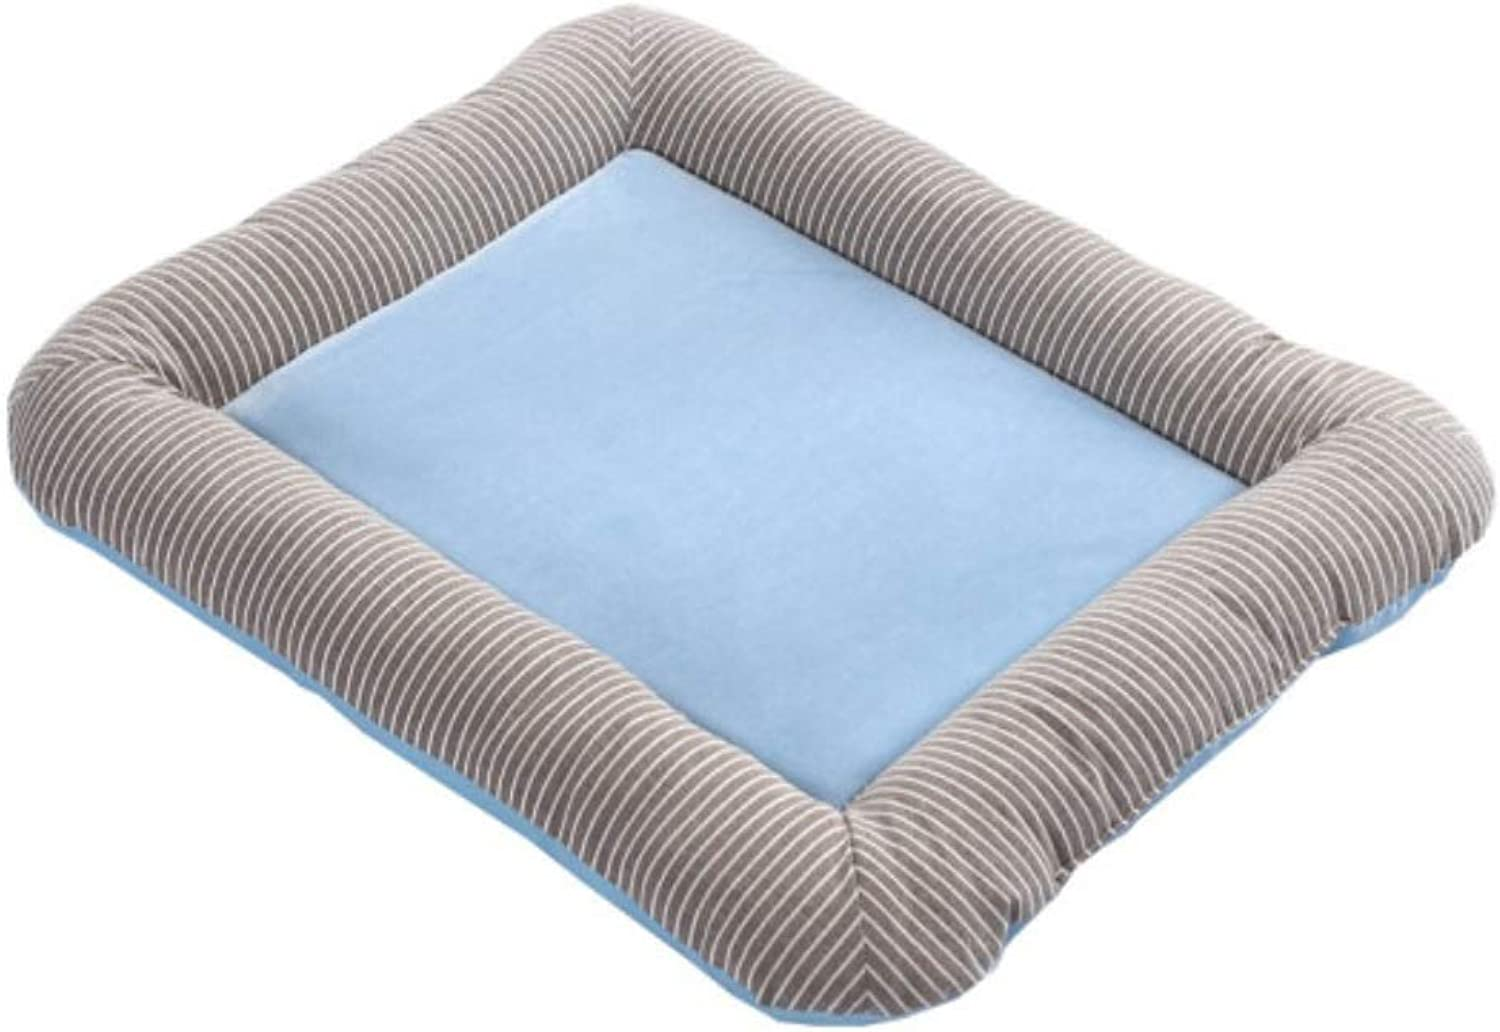 Fashion Rectangle Pet BedMultiple colors, Sizes, and Styles Available,Cuddly Pet Bed with Durable Fabrics,Blanket for Warmth and Security (color   bluee, Size   L)